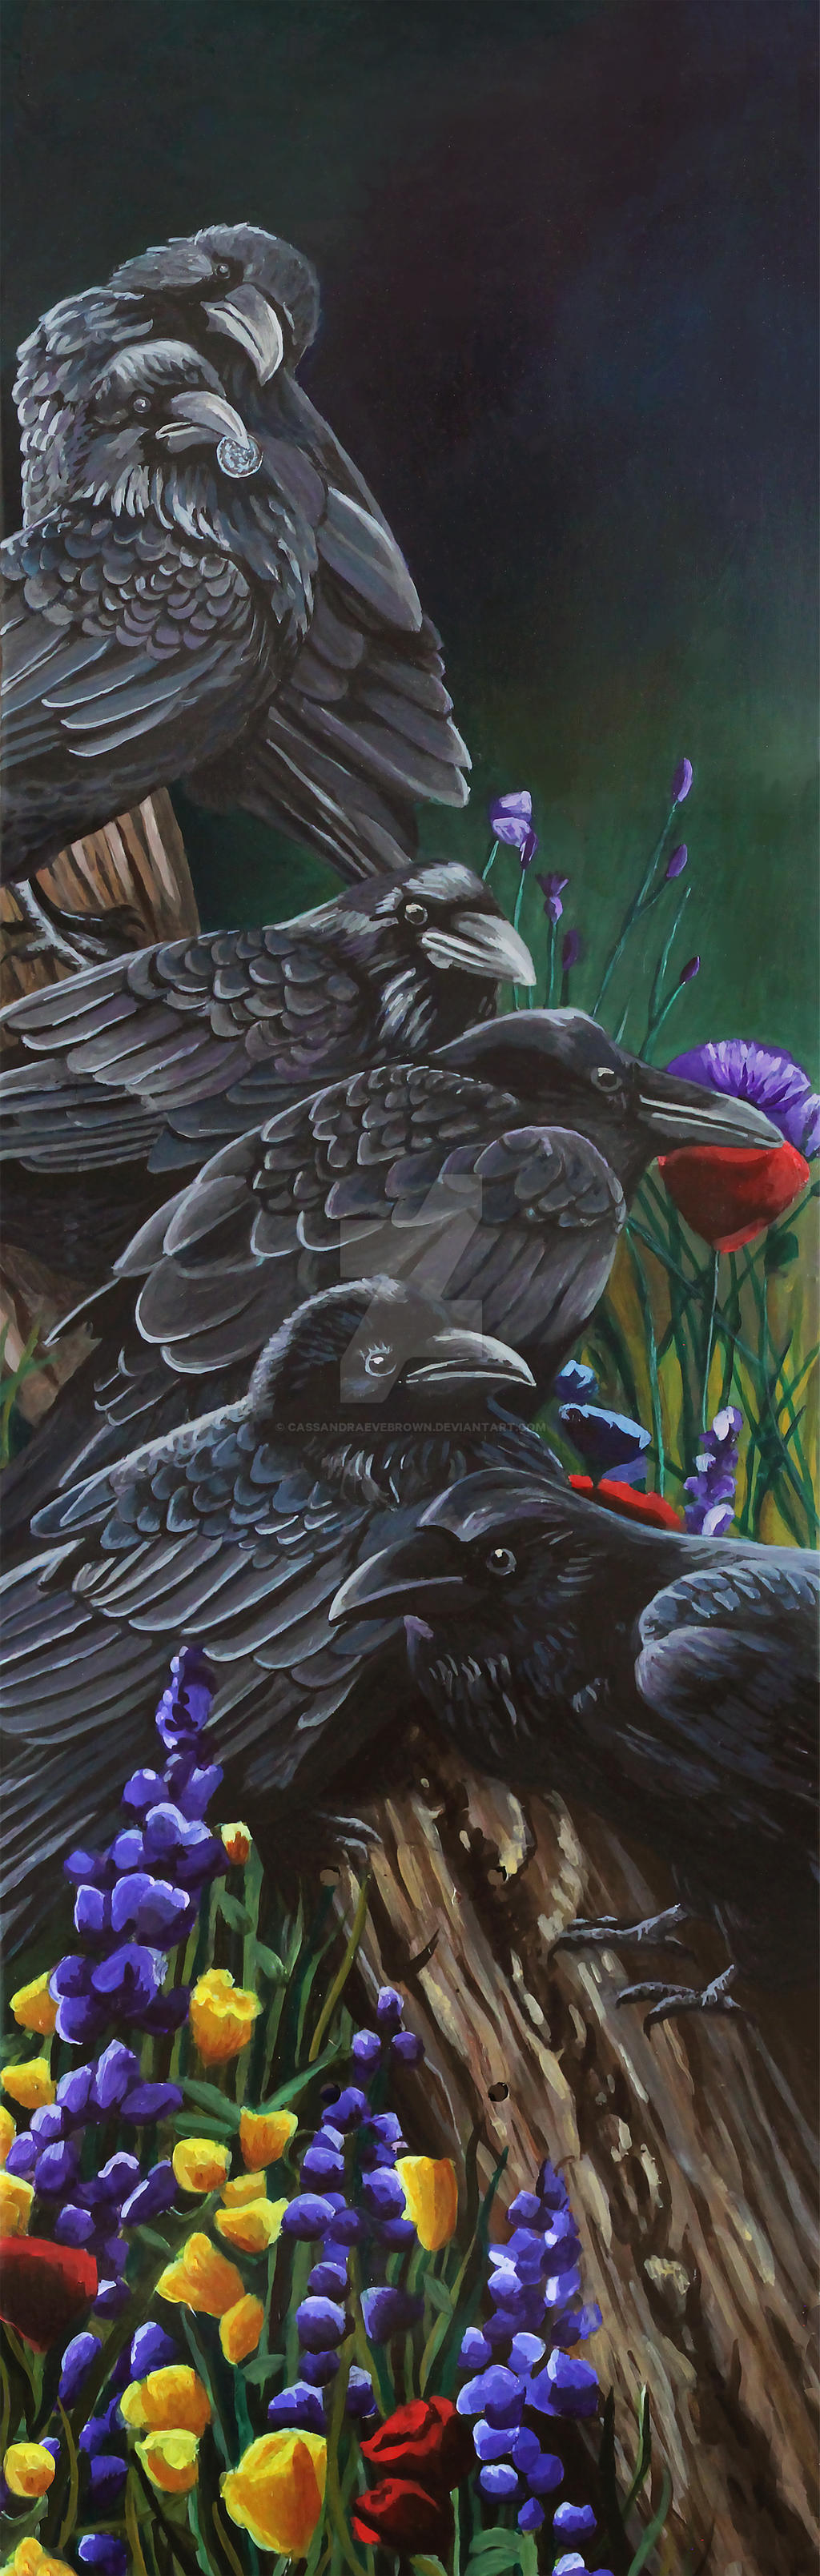 636389fc9f5 Unkindness of Ravens by CassandraEveBrown Unkindness of Ravens by  CassandraEveBrown